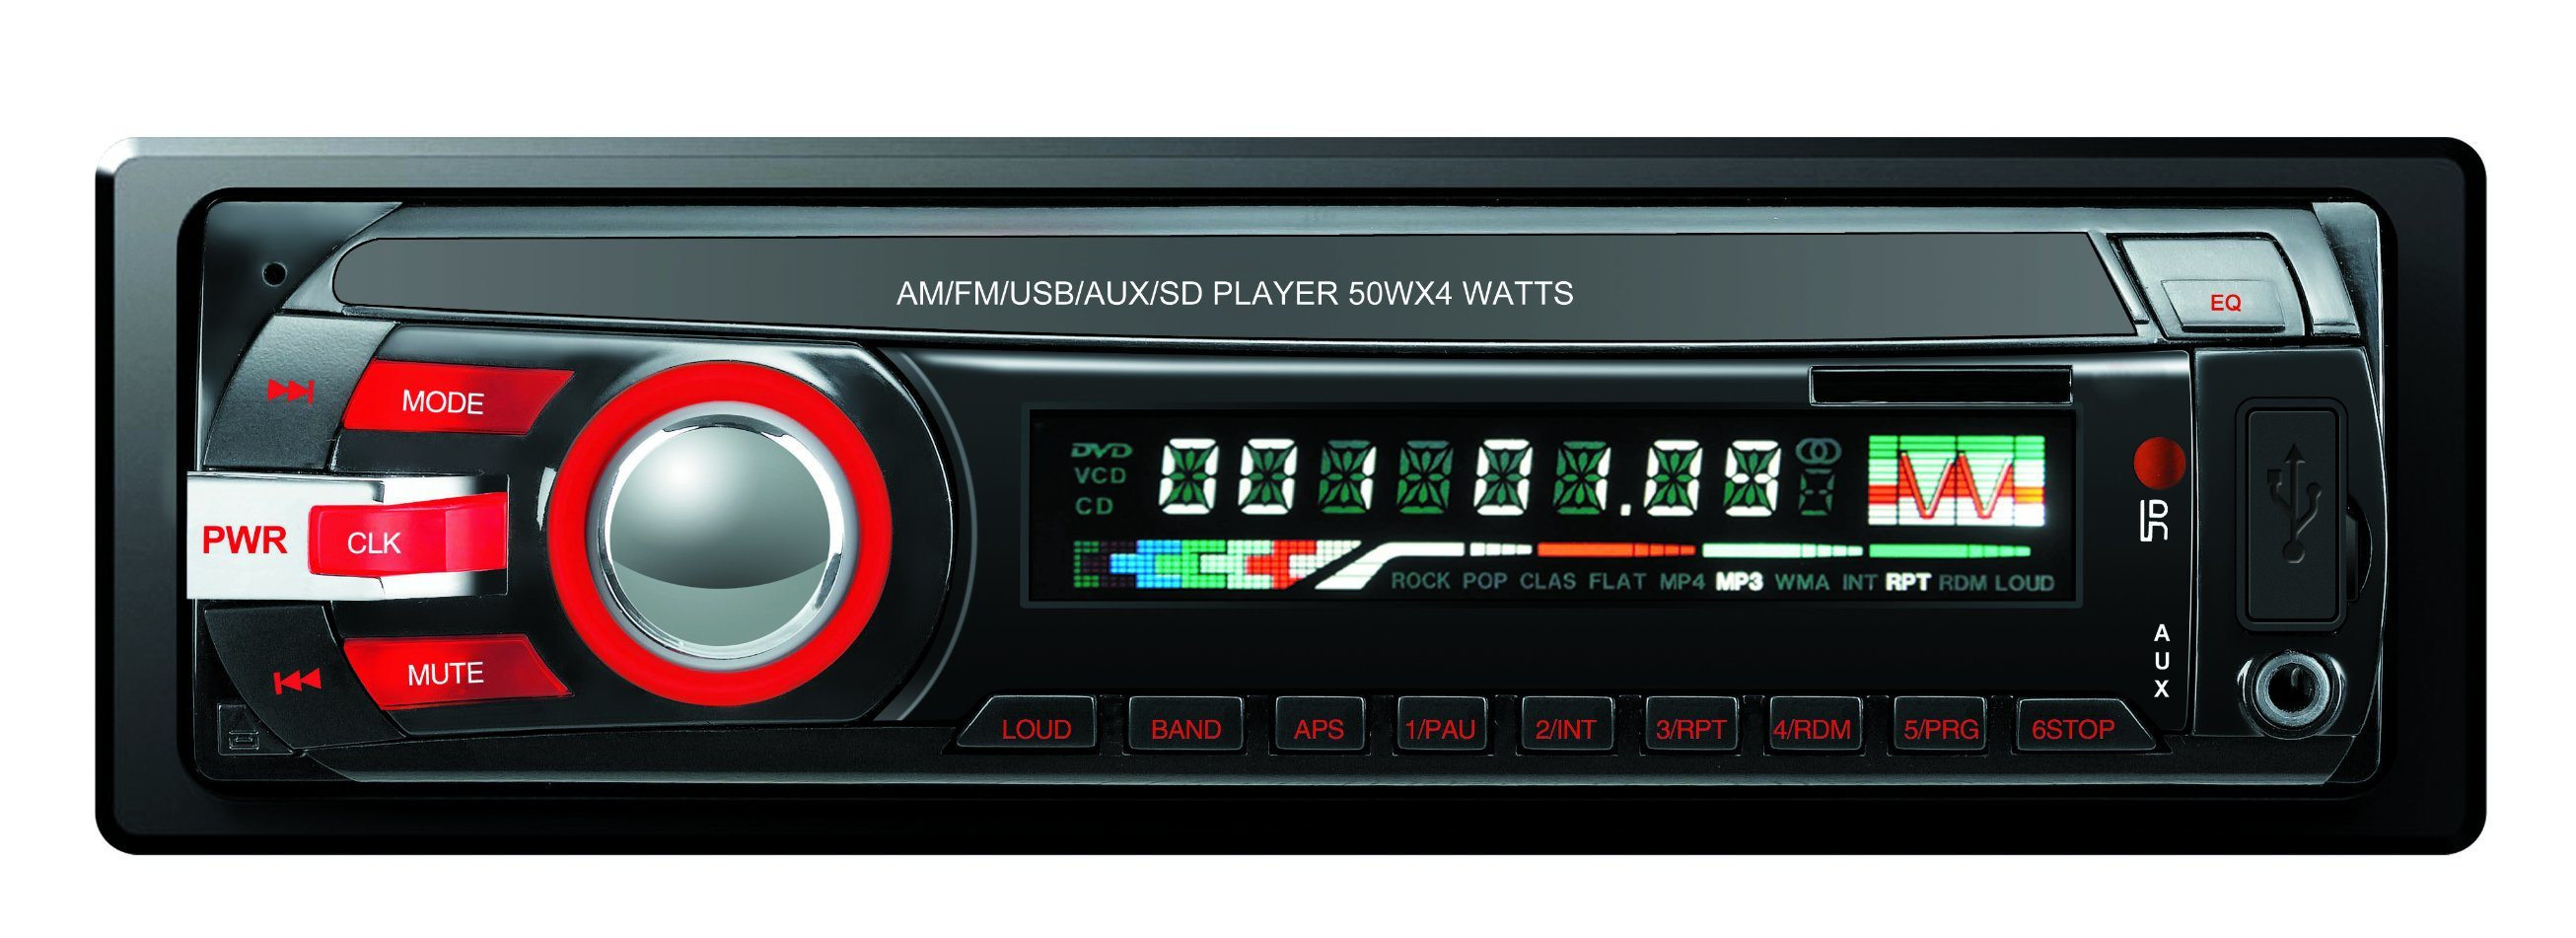 Newest Auto Car CD/DVD Player 1 DIN MP3